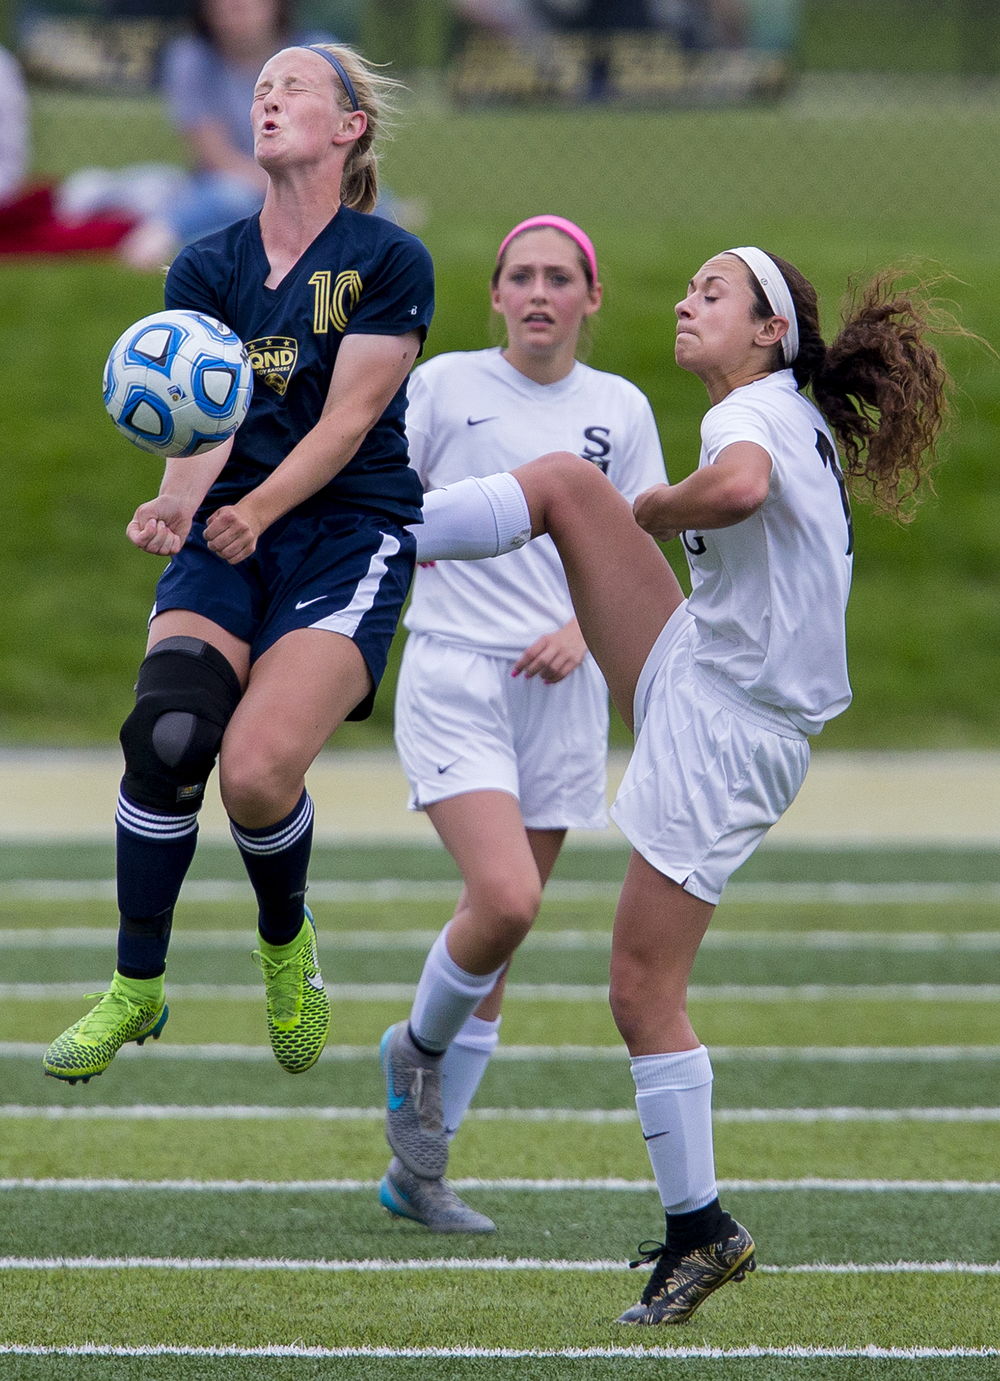 Qunicy Notre Dame's blocks the ball from Sacred Heart-Griffin's Ashleigh Cearlock during the Class 1A girls sectional soccer at Sacred Heart-Griffin Friday, May 20, 2016. Ted Schurter/The State Journal-Register